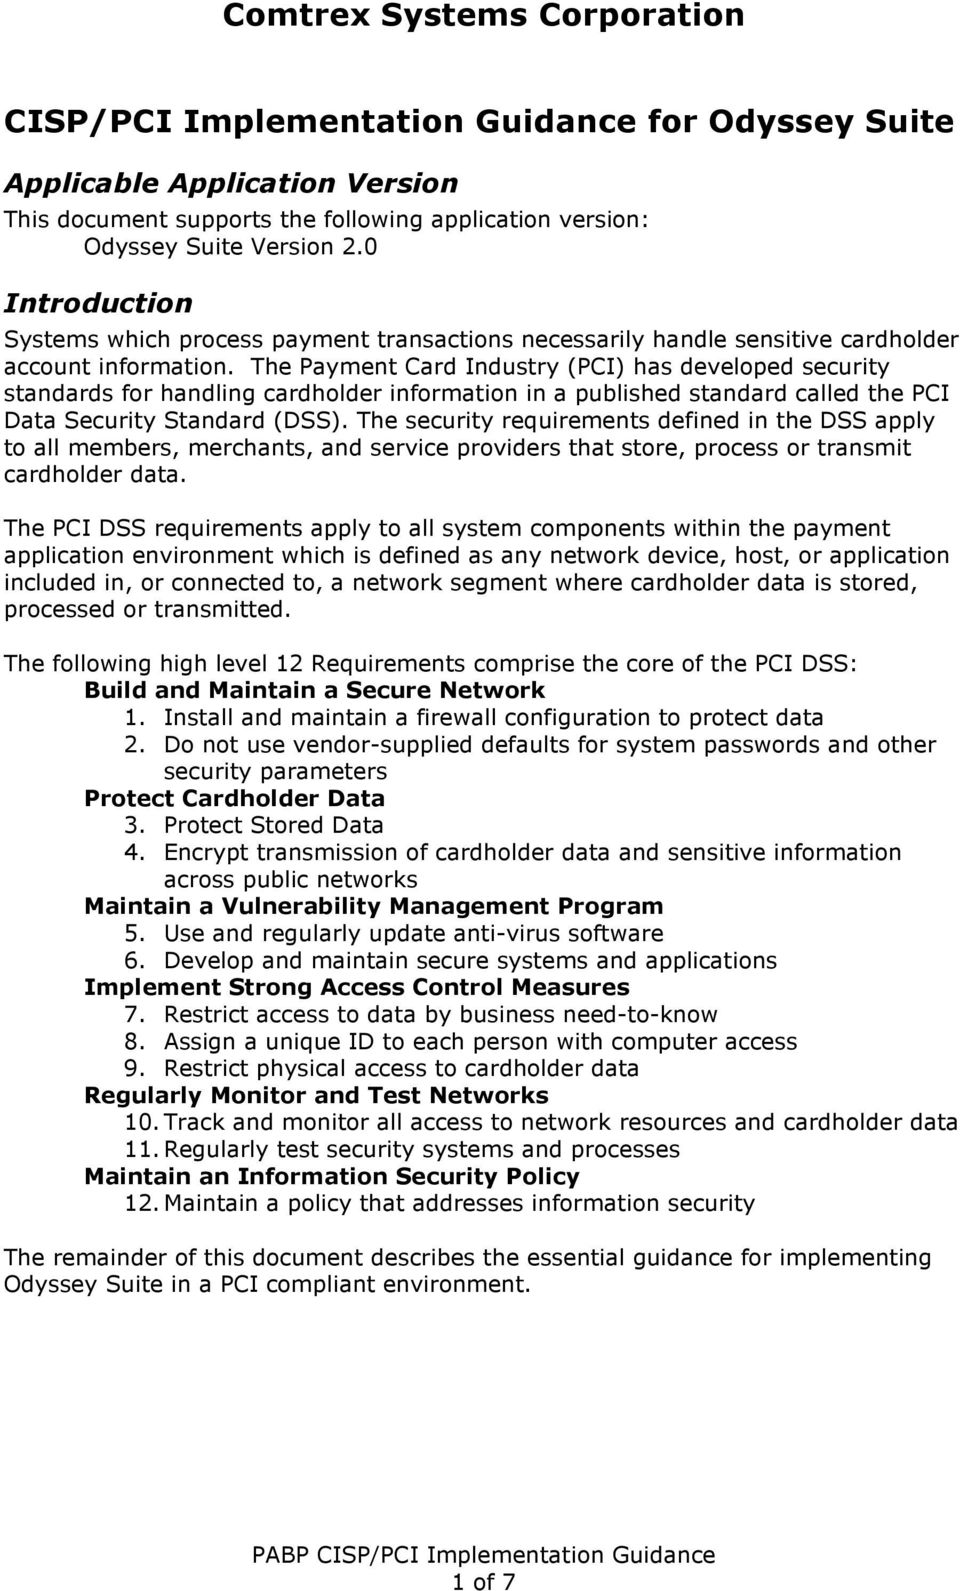 The Payment Card Industry (PCI) has develped security standards fr handling cardhlder infrmatin in a published standard called the PCI Data Security Standard (DSS).